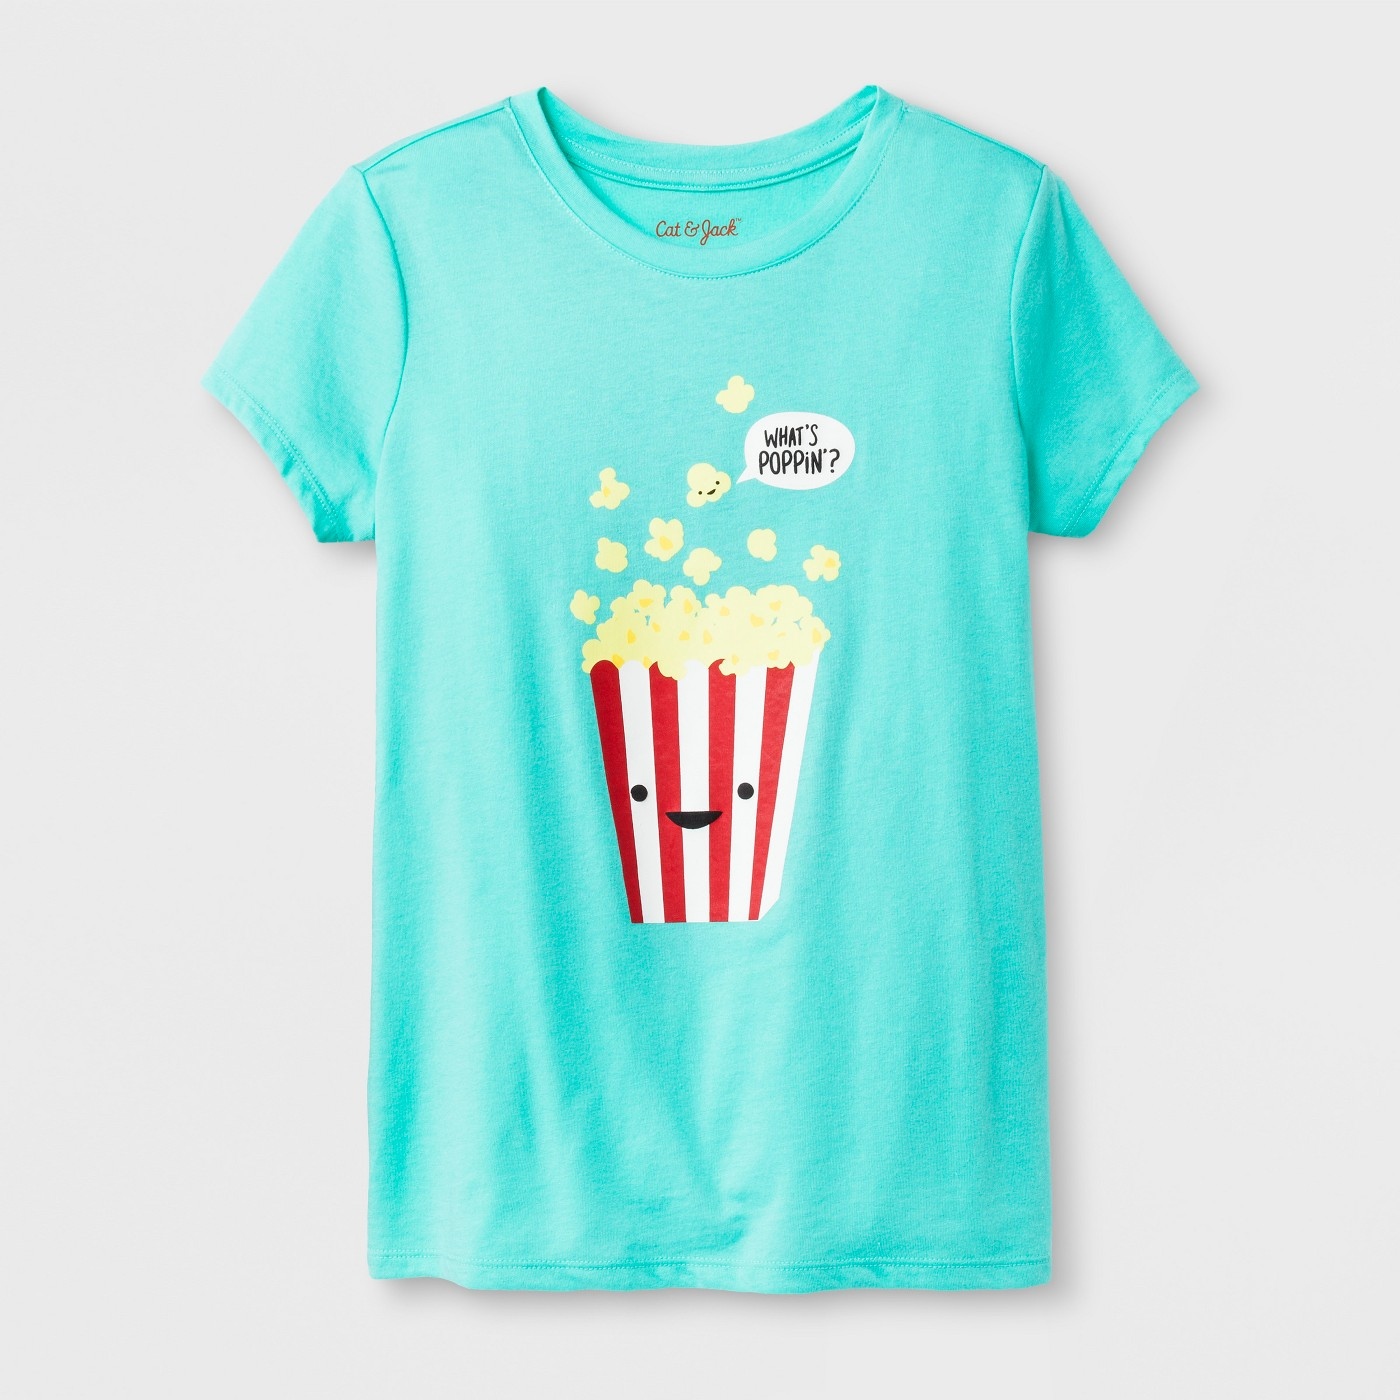 Girls' What's Poppin' Graphic Tee - $5